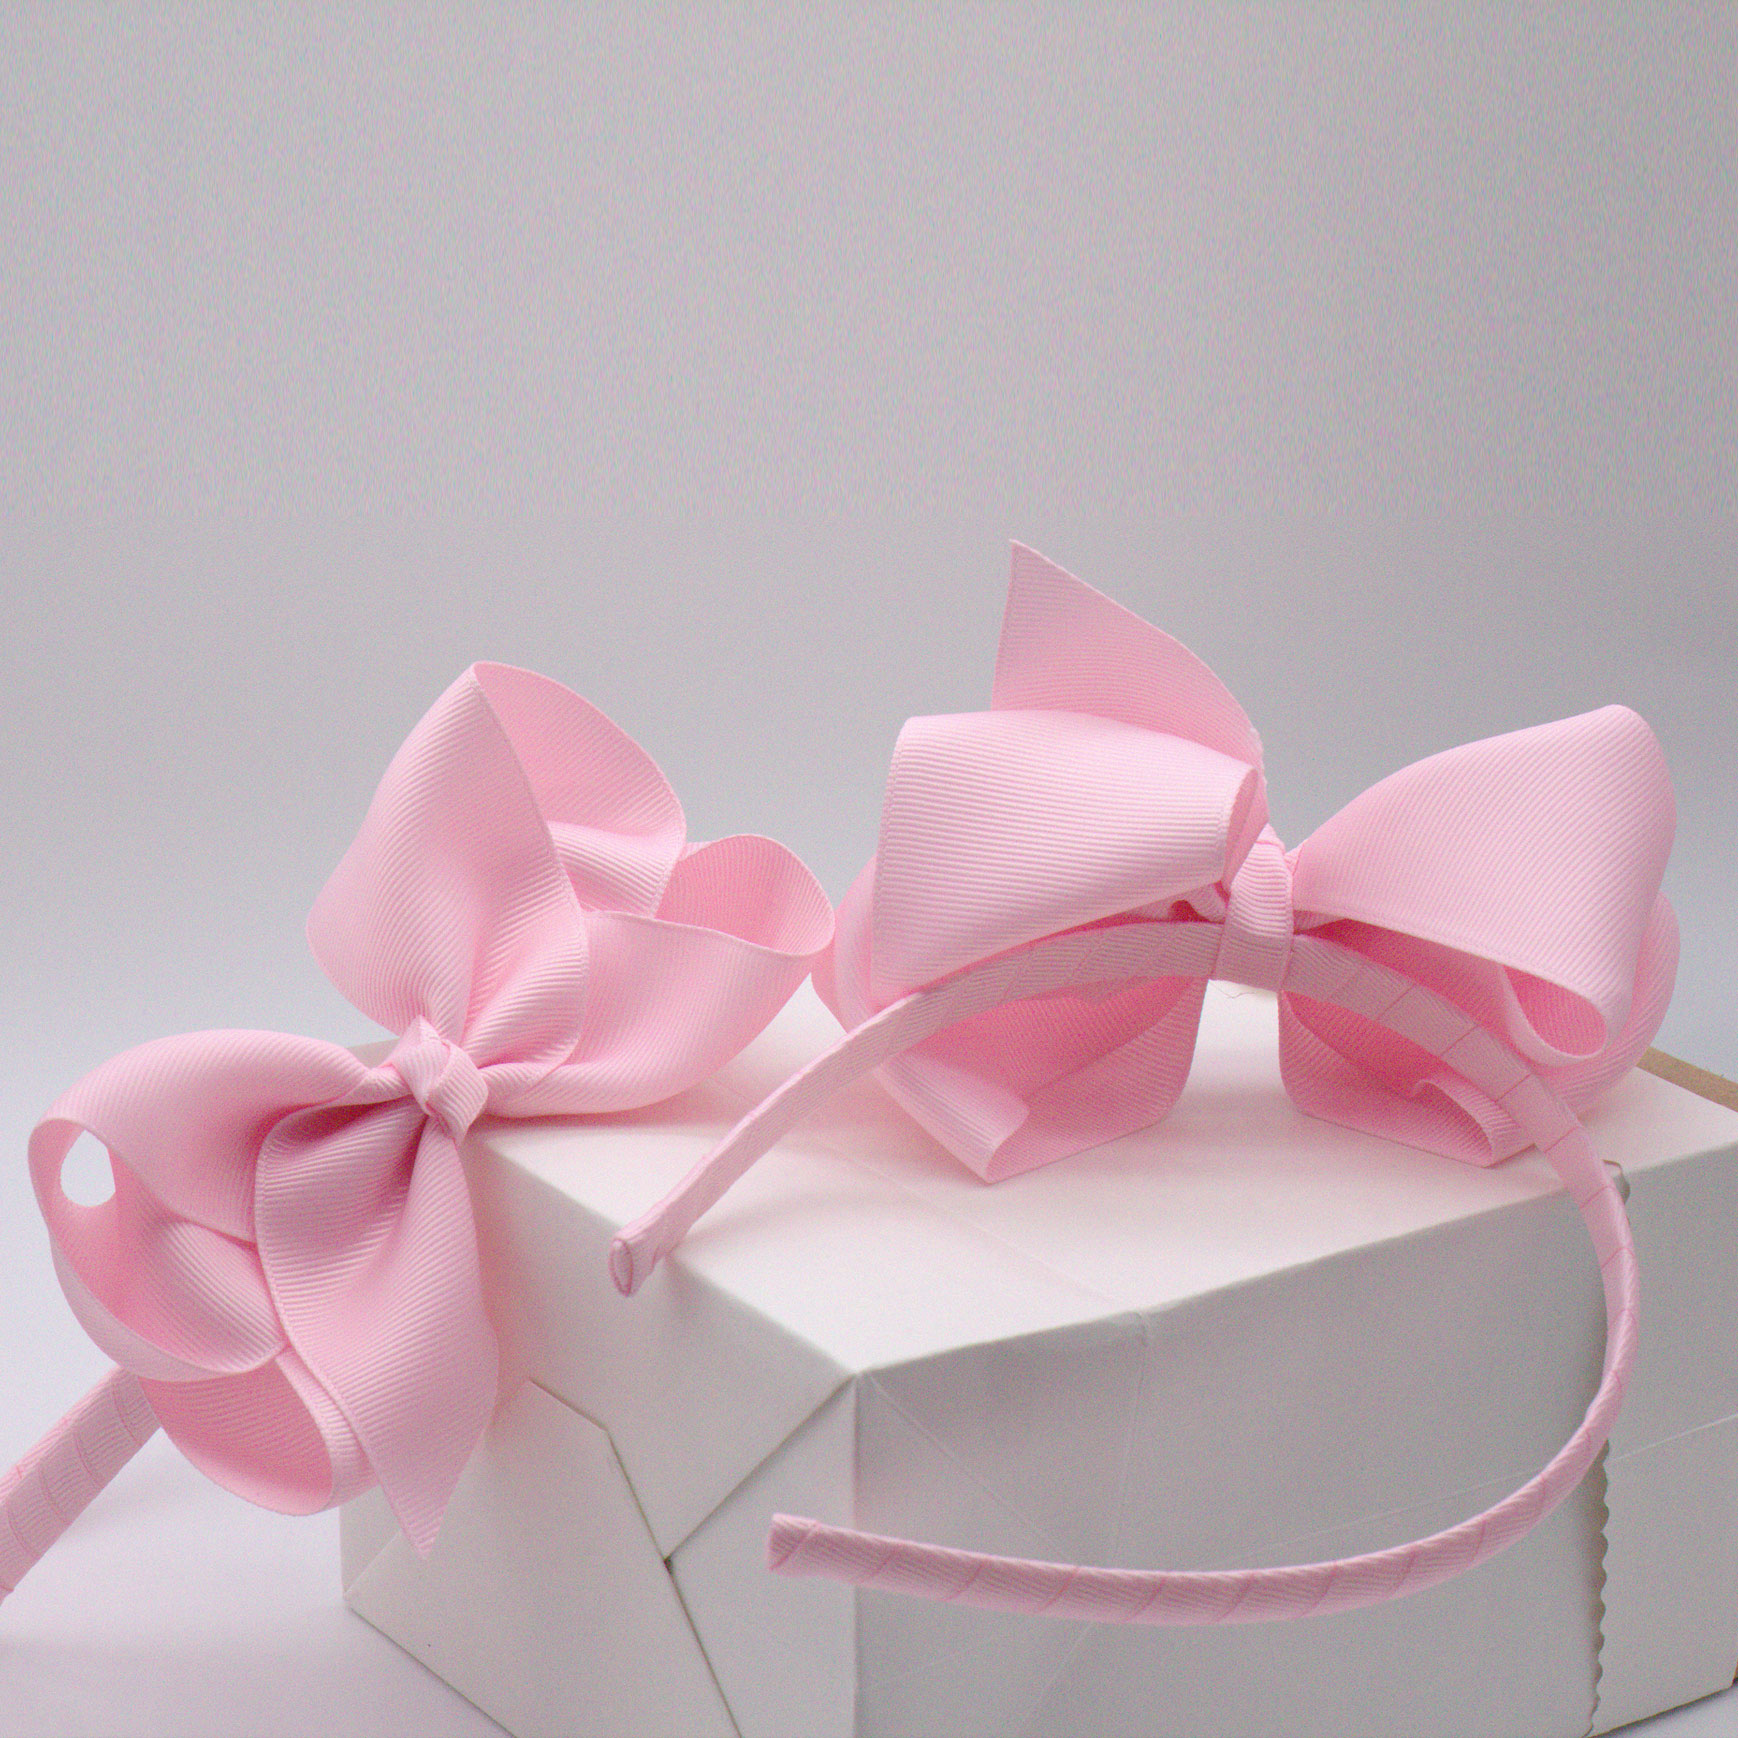 Ladies kids girls pink ribbon bow fabric hair hoop fashion headband bands